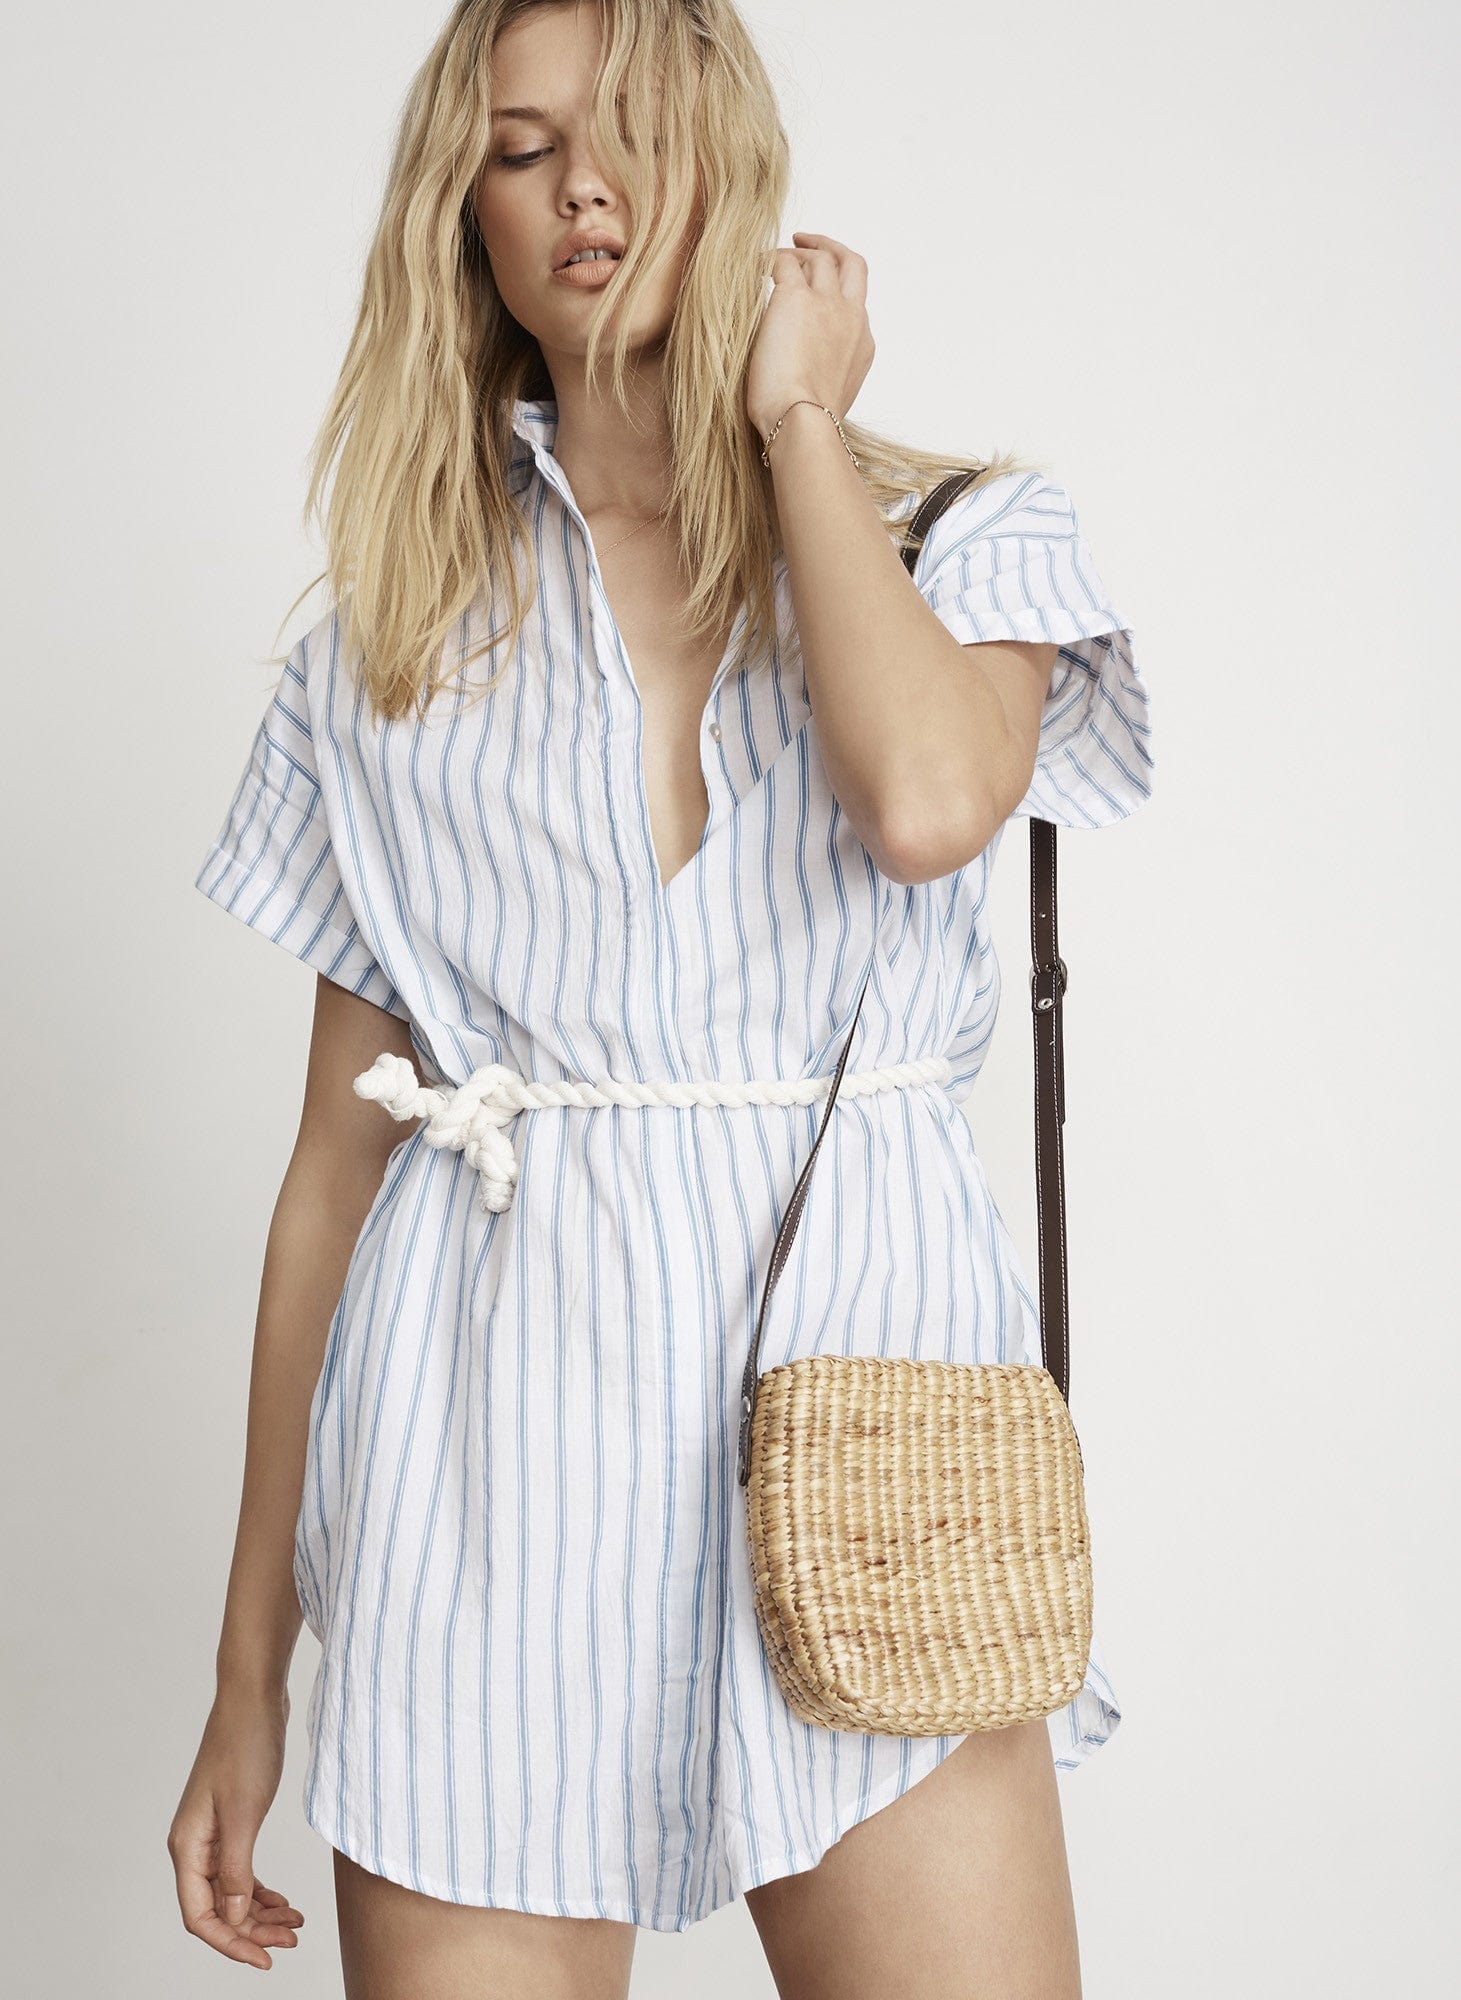 PALLAIS STRIPE PRINT - AVALON SHIRT DRESS - FINAL SALE